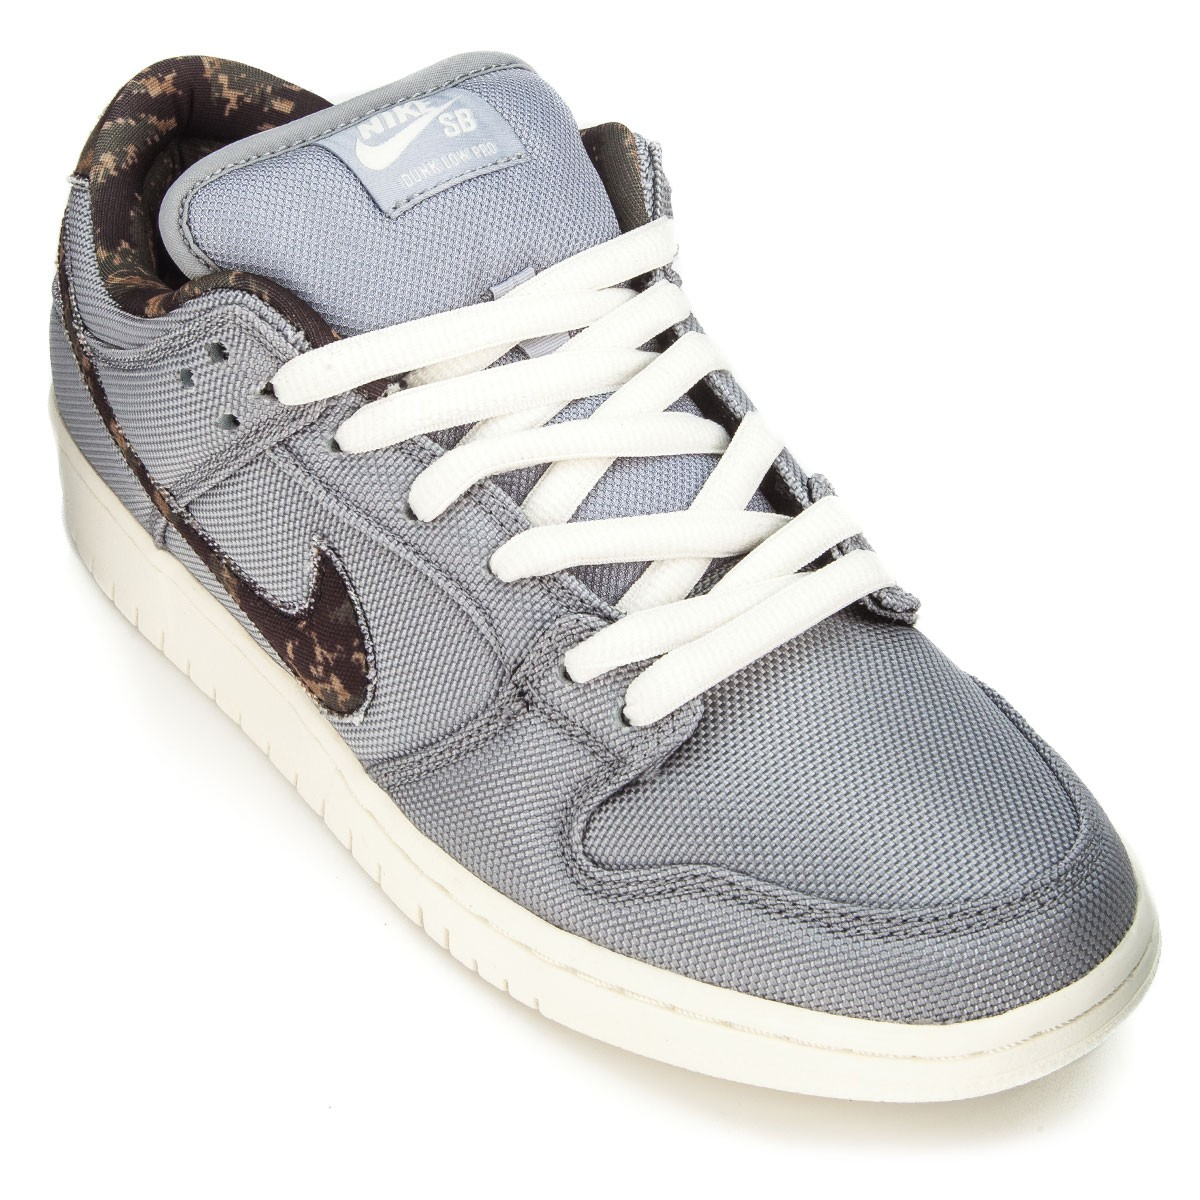 timeless design 31e85 ae302 Nike Dunk Low Pro SB Shoes